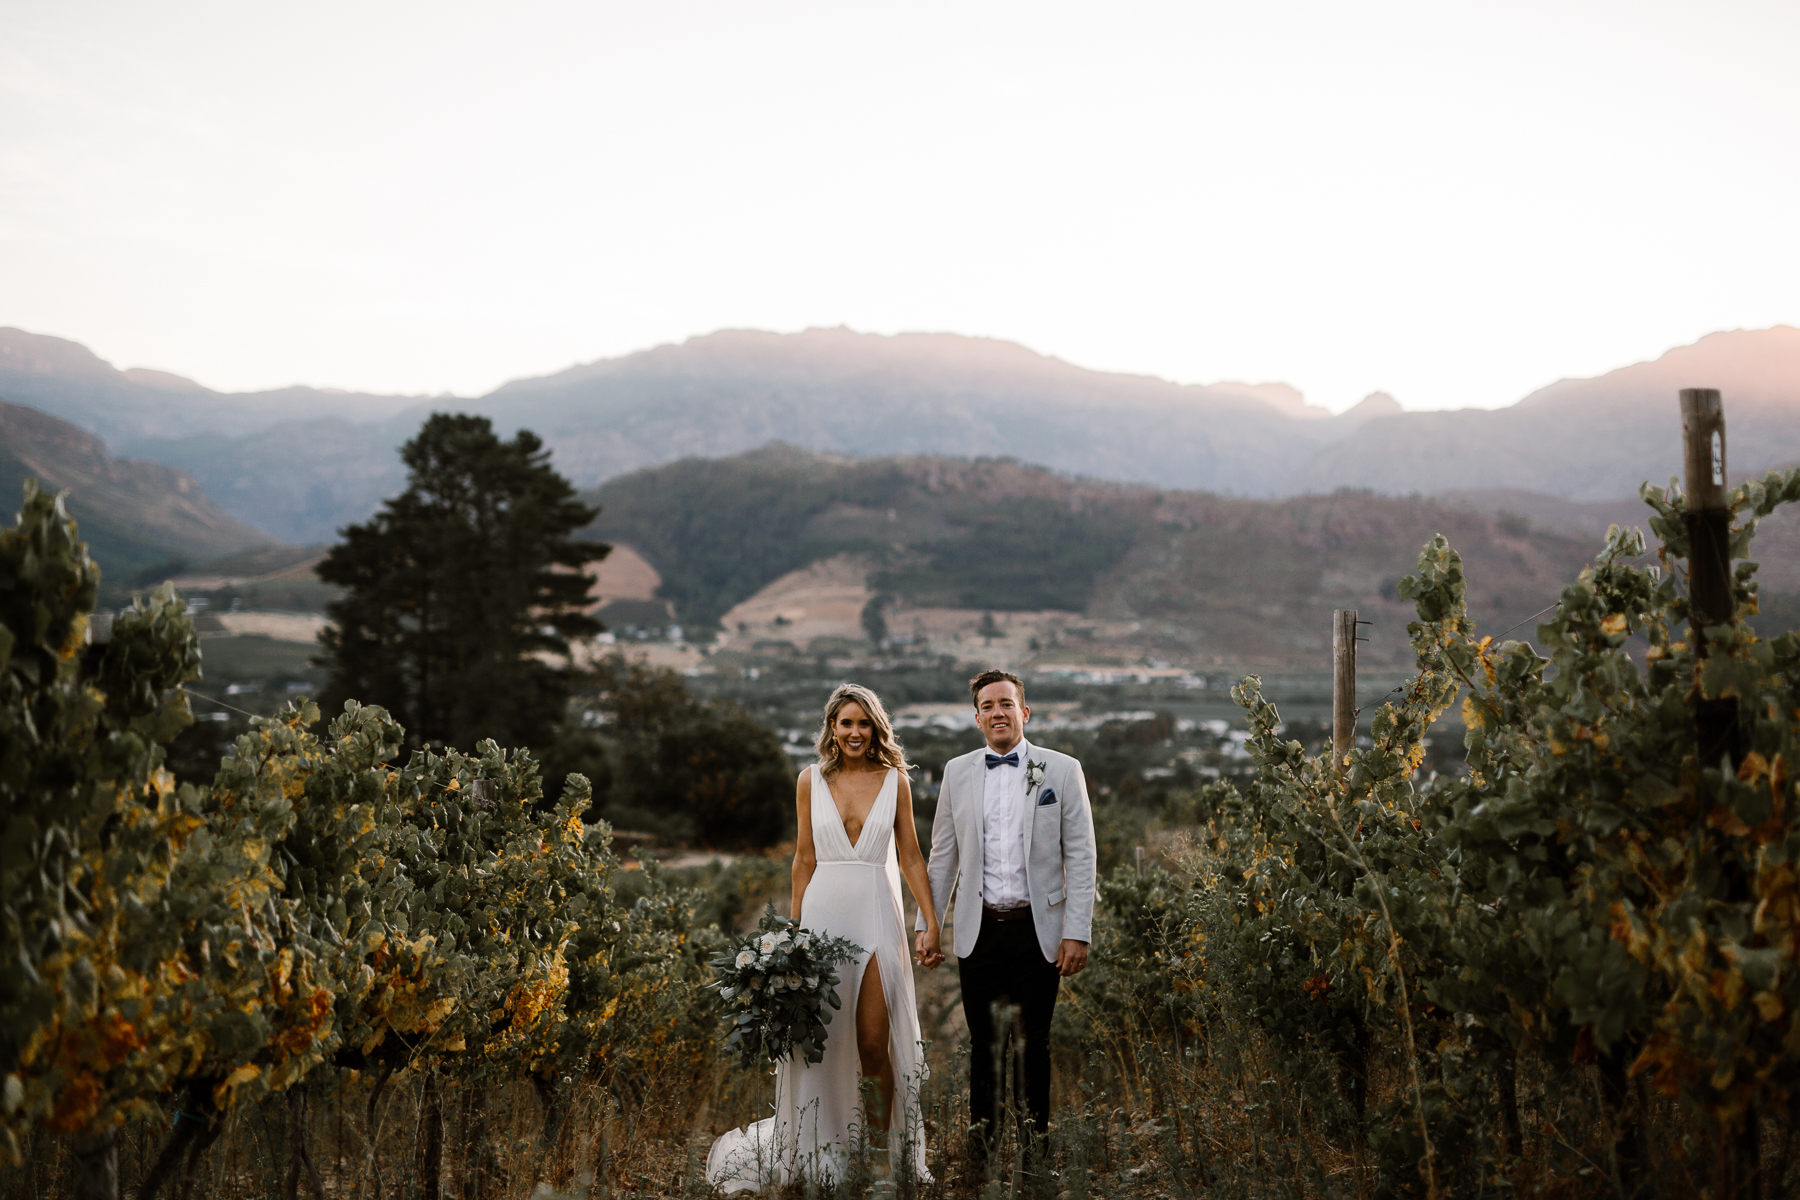 ThunderandLove-weddingphotographers-CapeTown-K&L-662